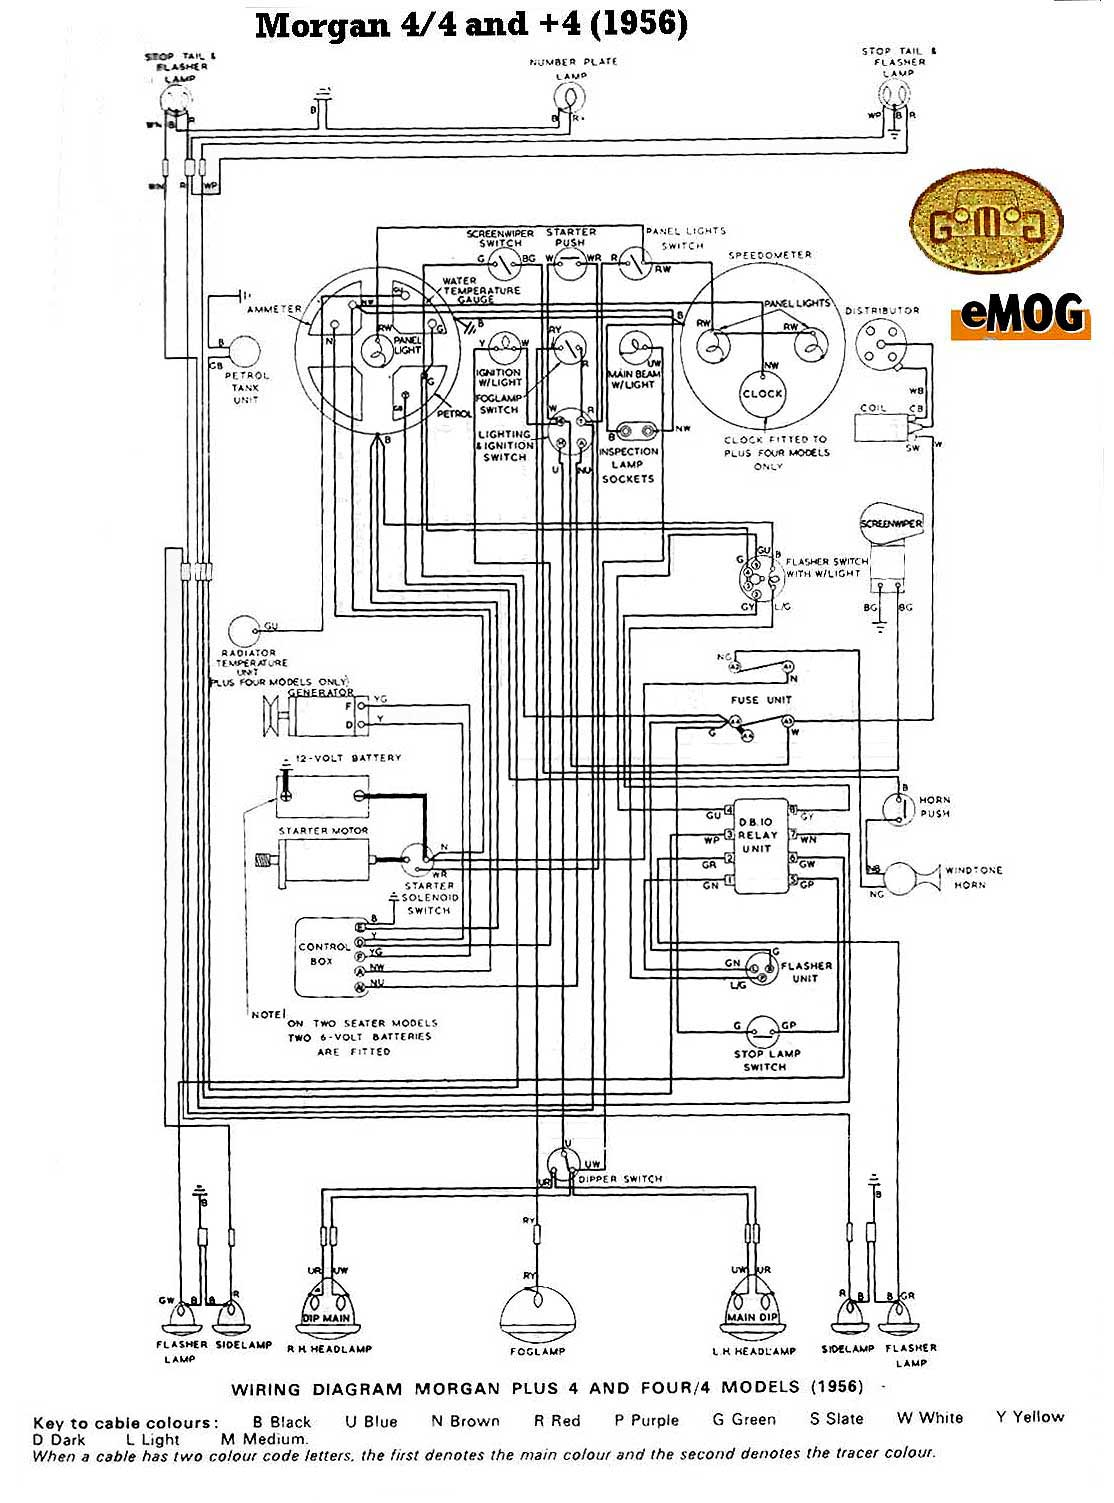 Assembly overview headlight washer system together with Star Delta Starter Connection Diagram moreover Classic Columns Elevation in addition 149 further 62246 conedev. on electrical